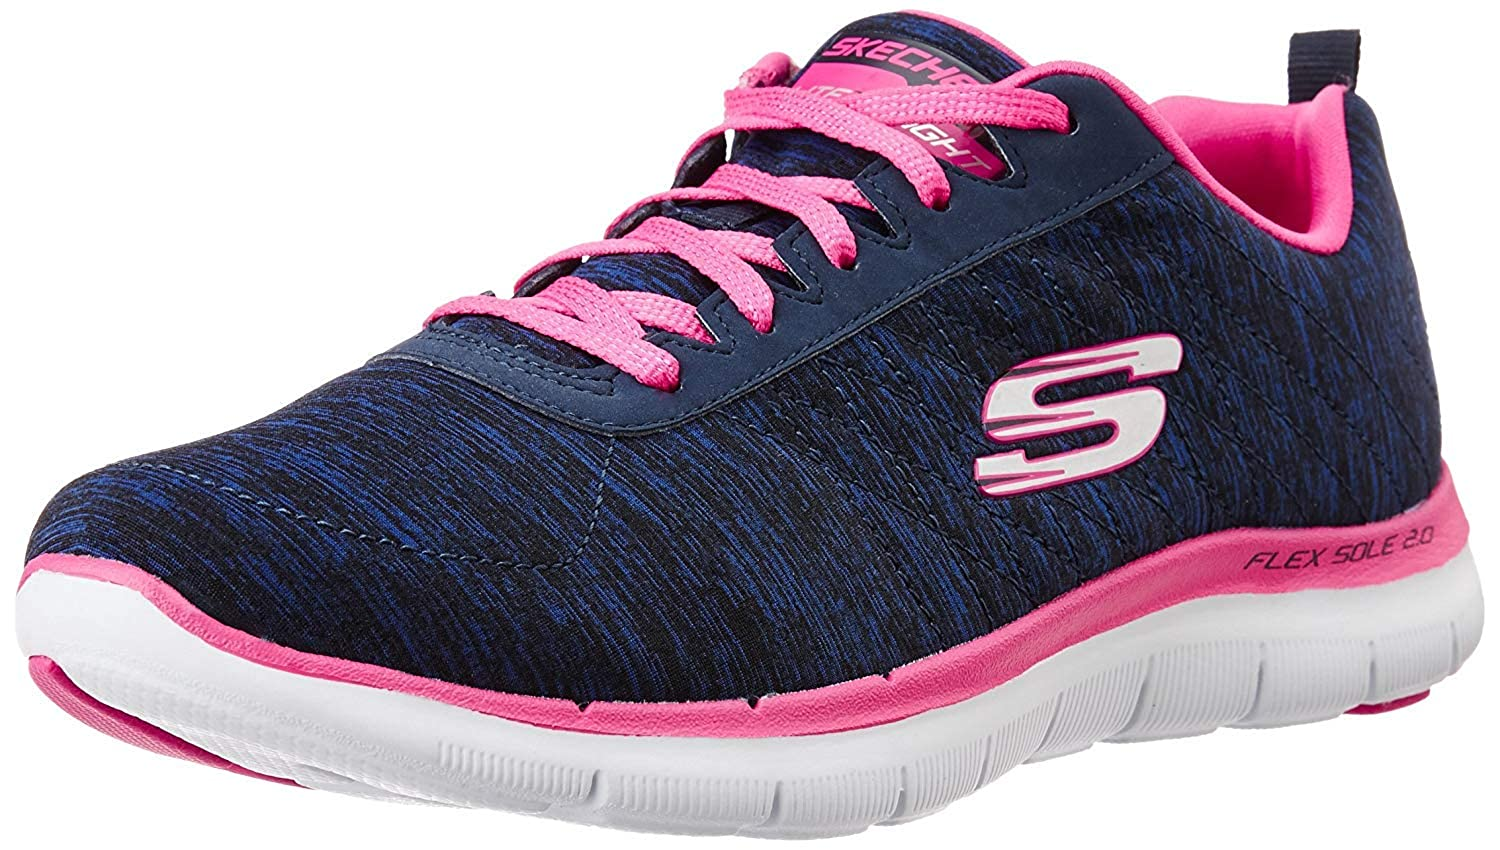 Disparates profundamente doce  Buy Skechers Women's Flex Appeal 2.0 Sneakers at Amazon.in